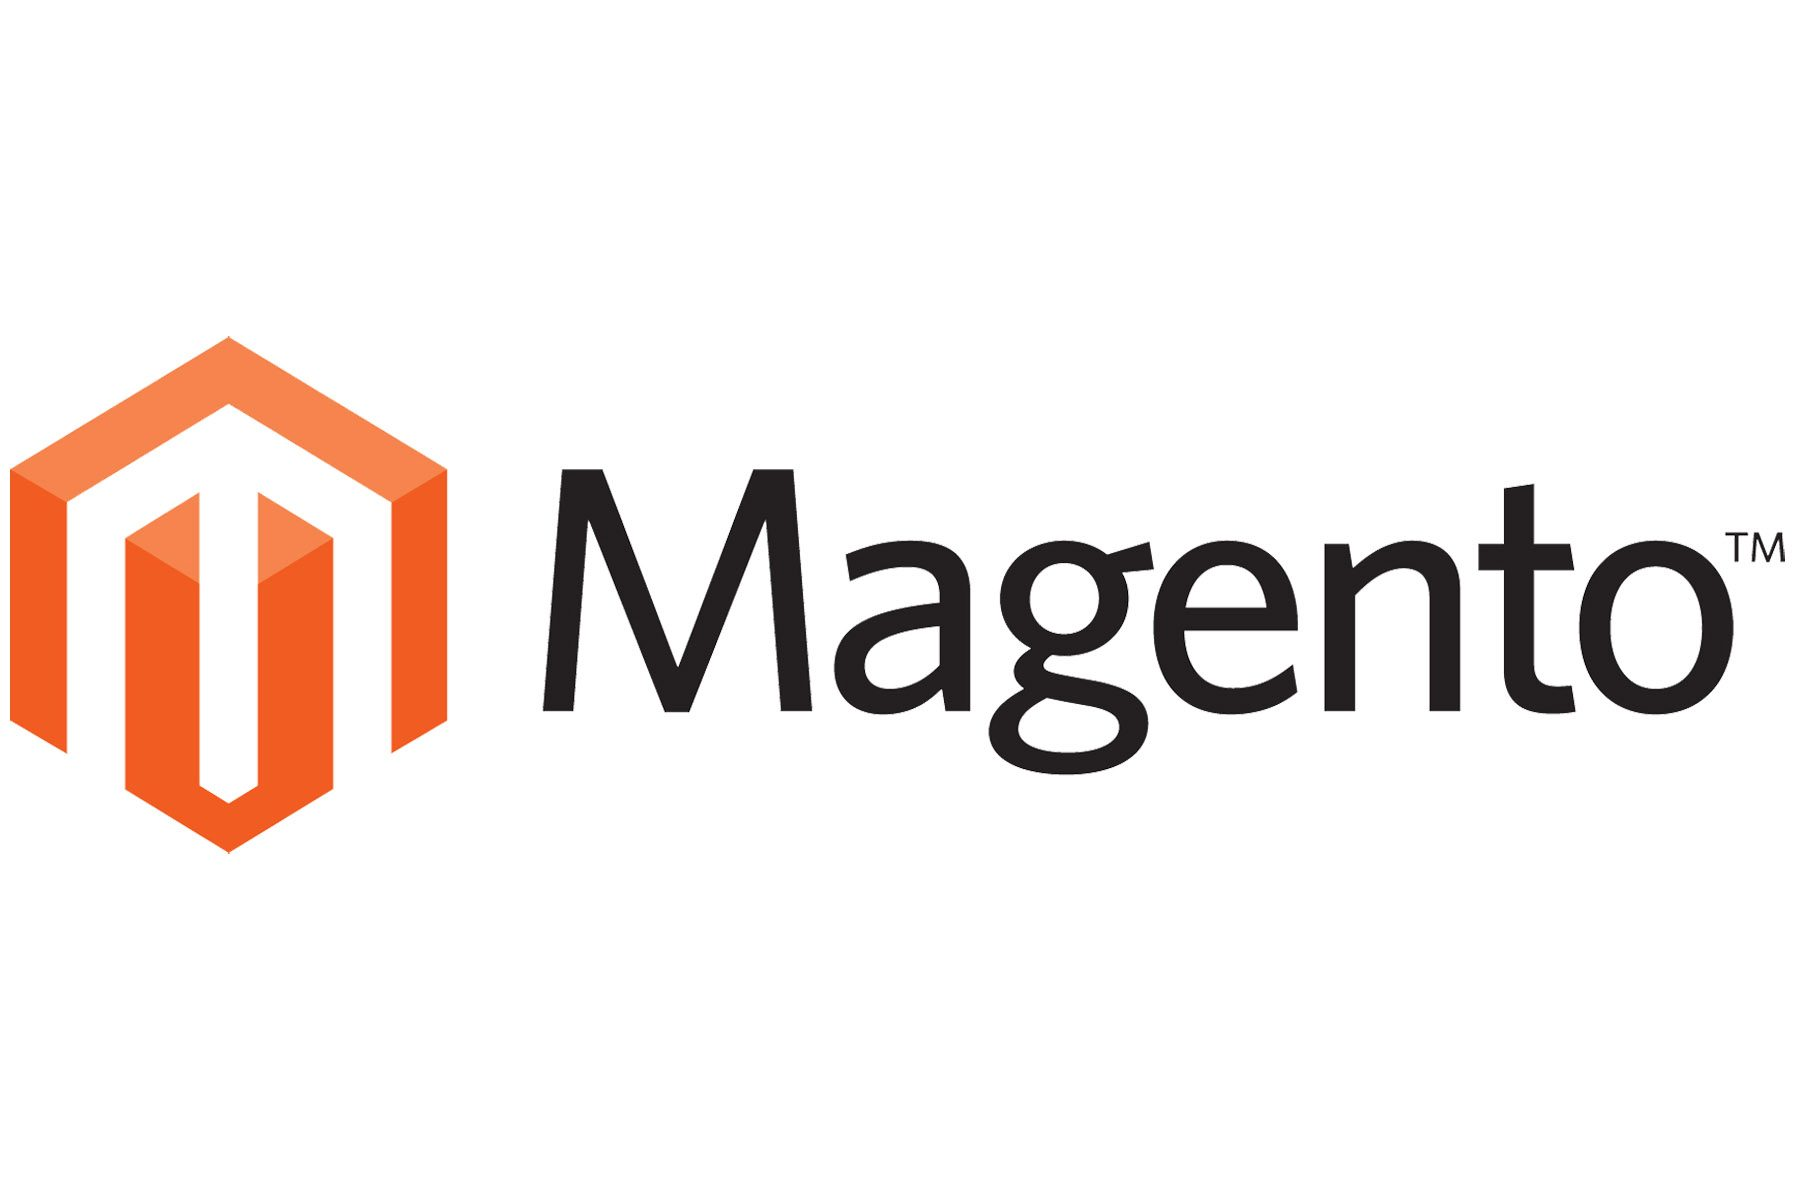 Adobe to acquire Magento Commerce for $1.68 billion